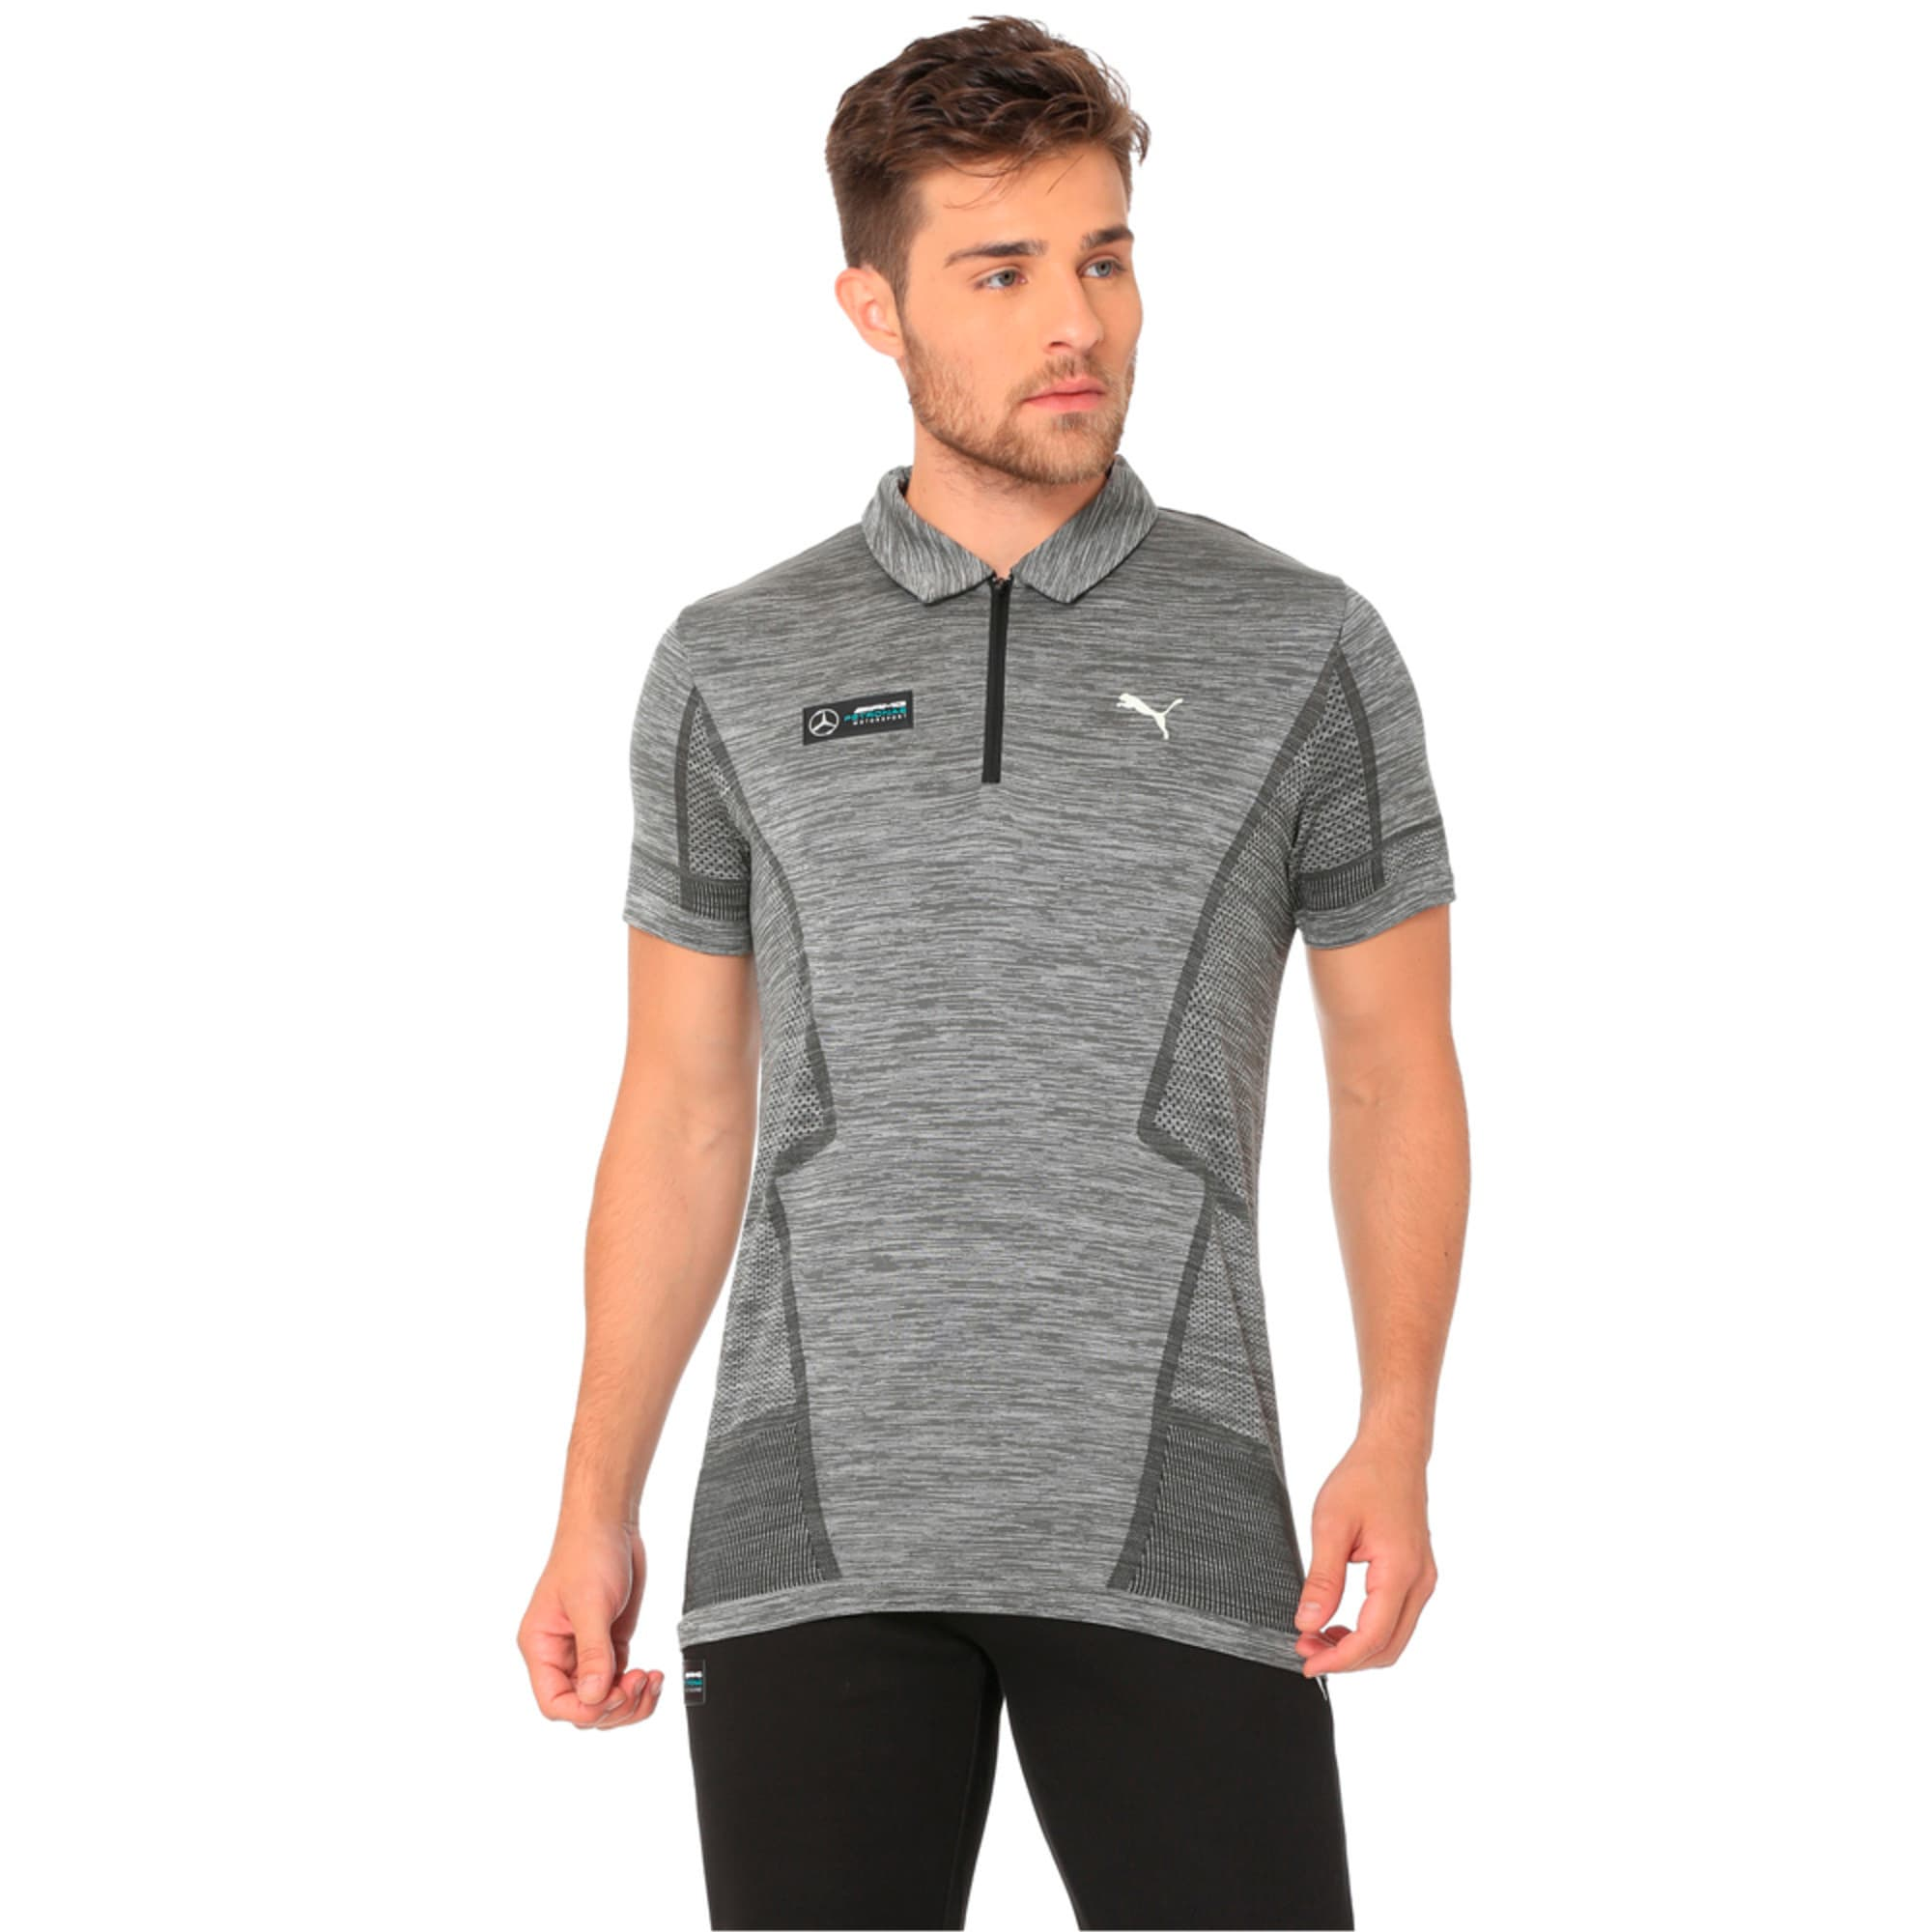 MERCEDES AMG PETRONAS Men's evoKNIT Polo, Medium Gray Heather, large-IND